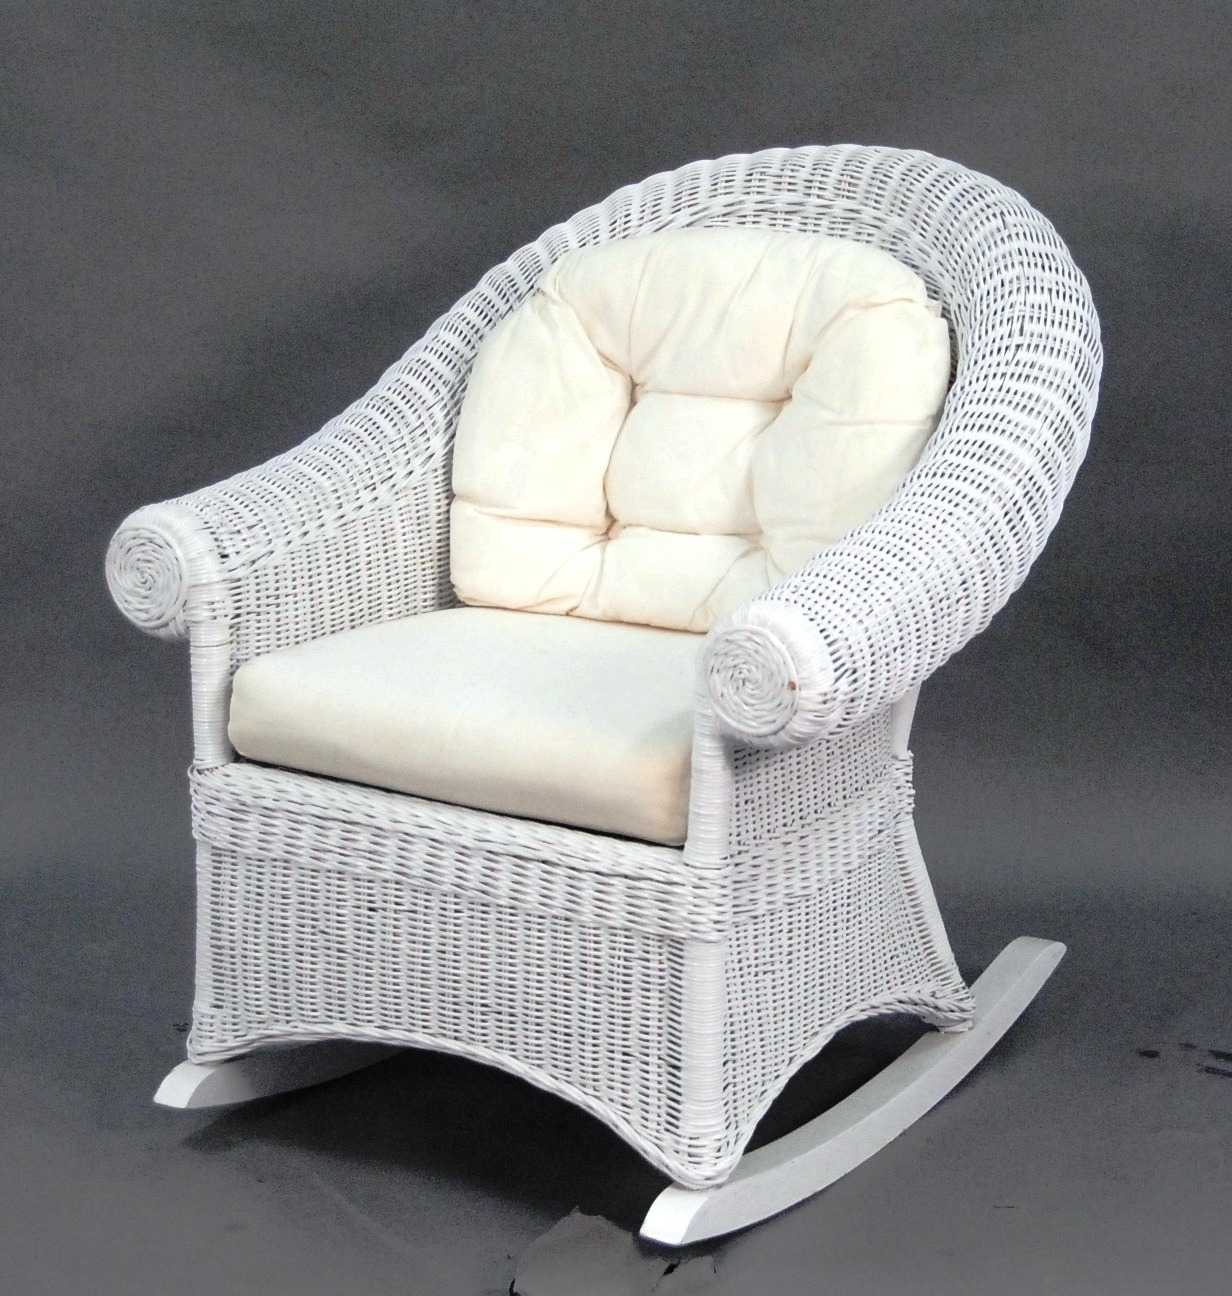 Popular Photo of White Wicker Rocking Chair For Nursery